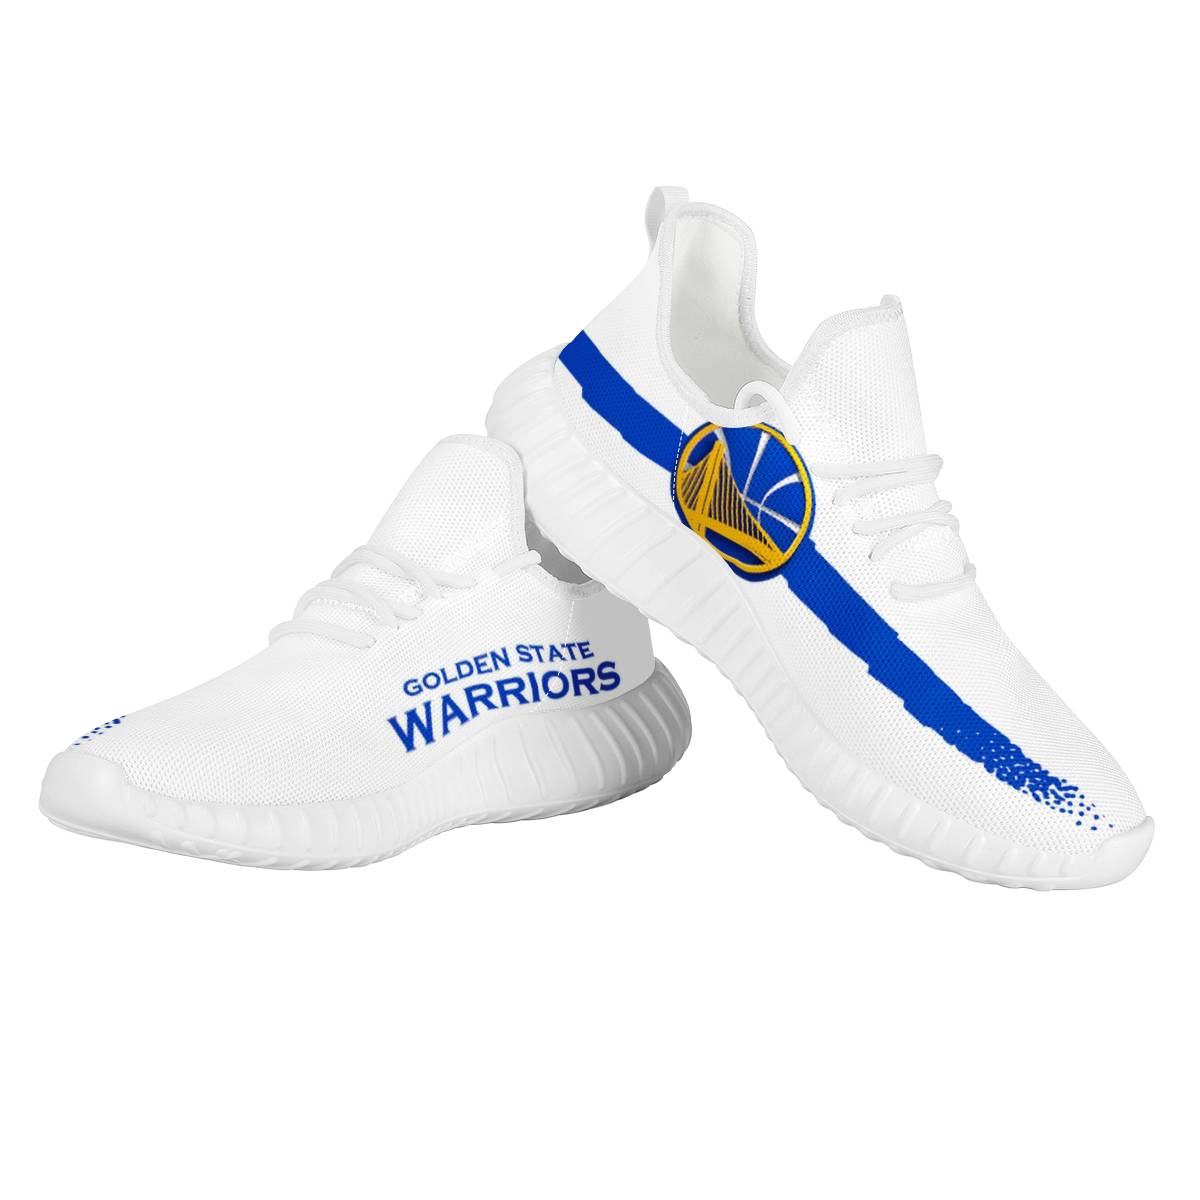 Men's Golden State Warriors Mesh Knit Sneakers/Shoes 001